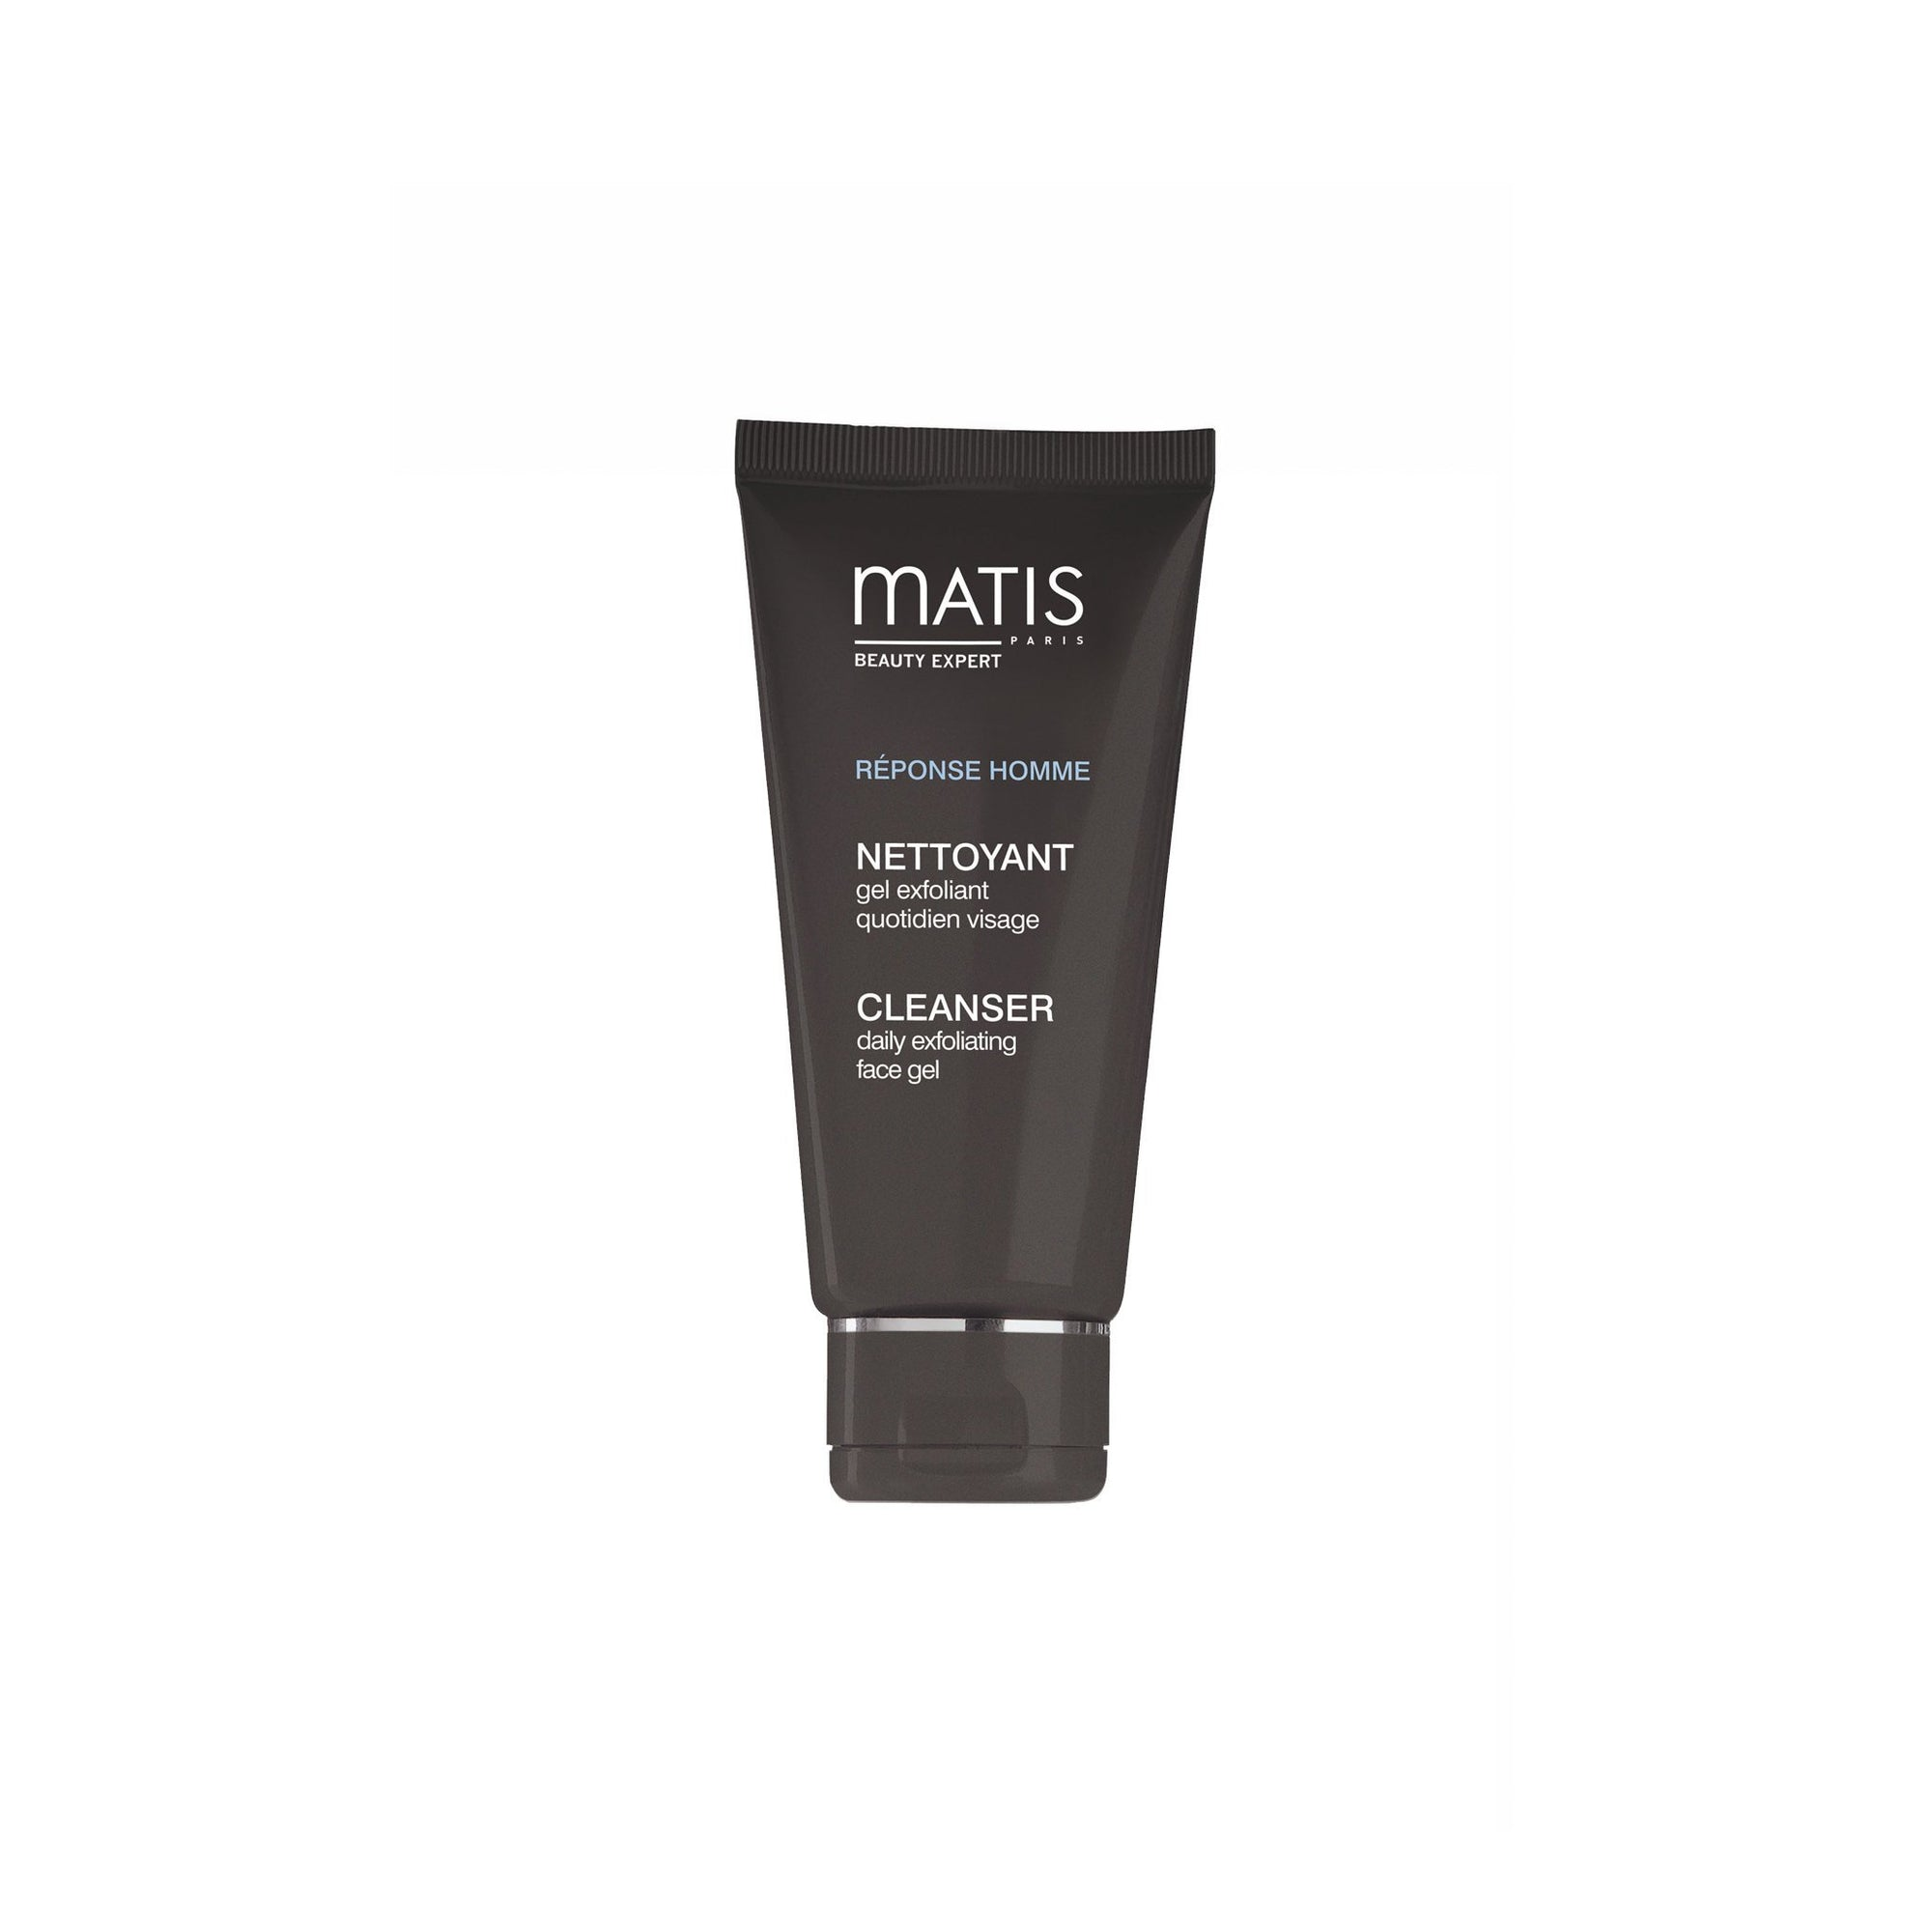 Matis Men's Daily Exfoliating Face Gel 150ml